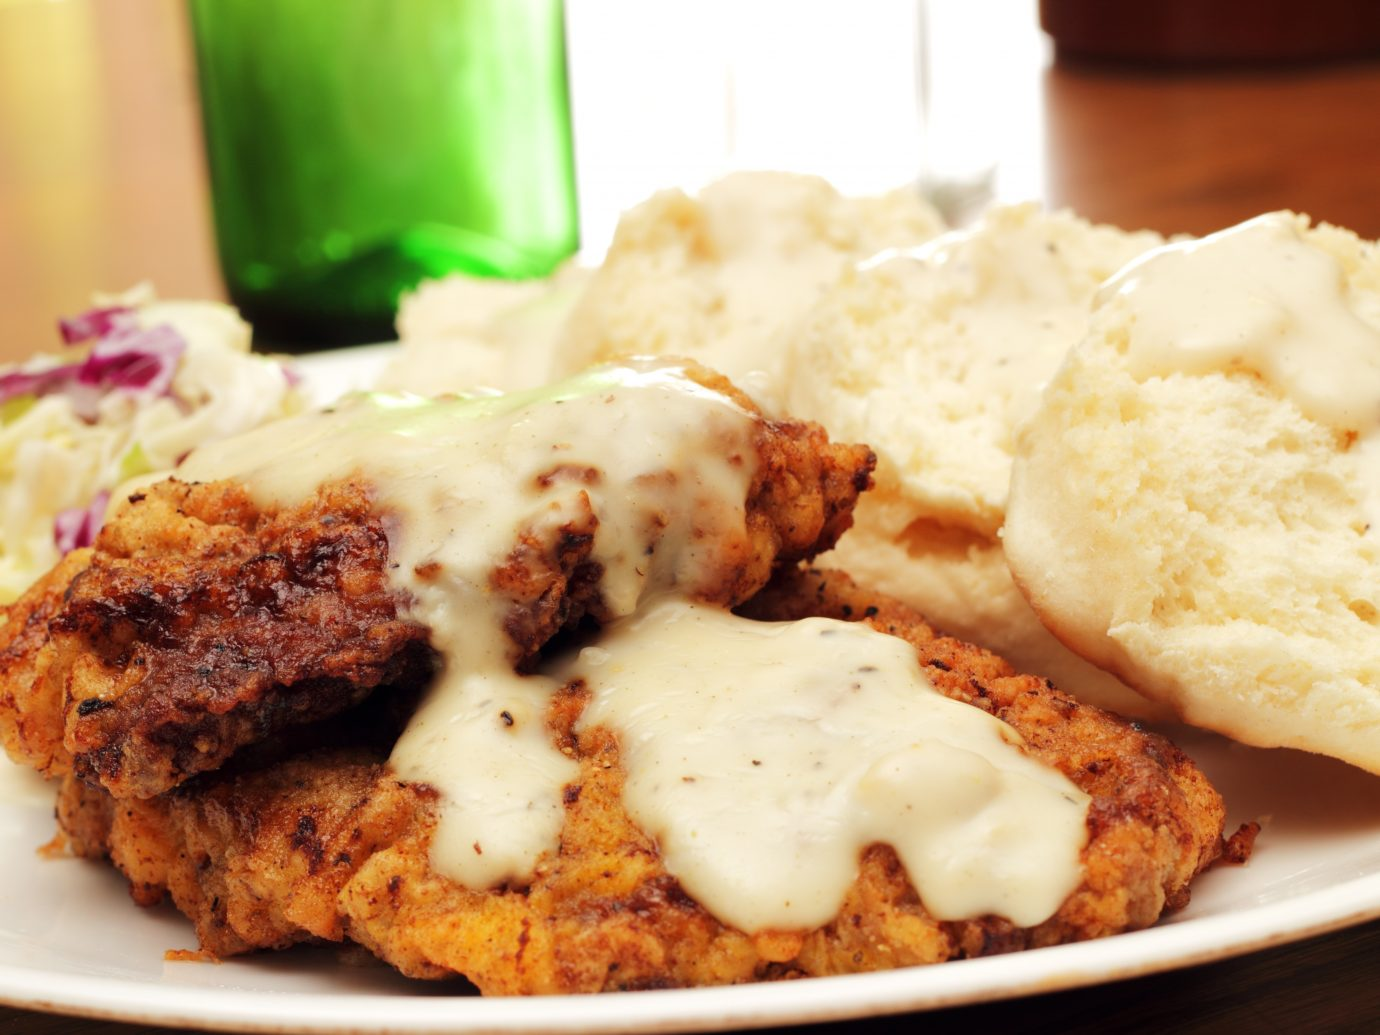 Chicken fried steak with biscuits and country gravy